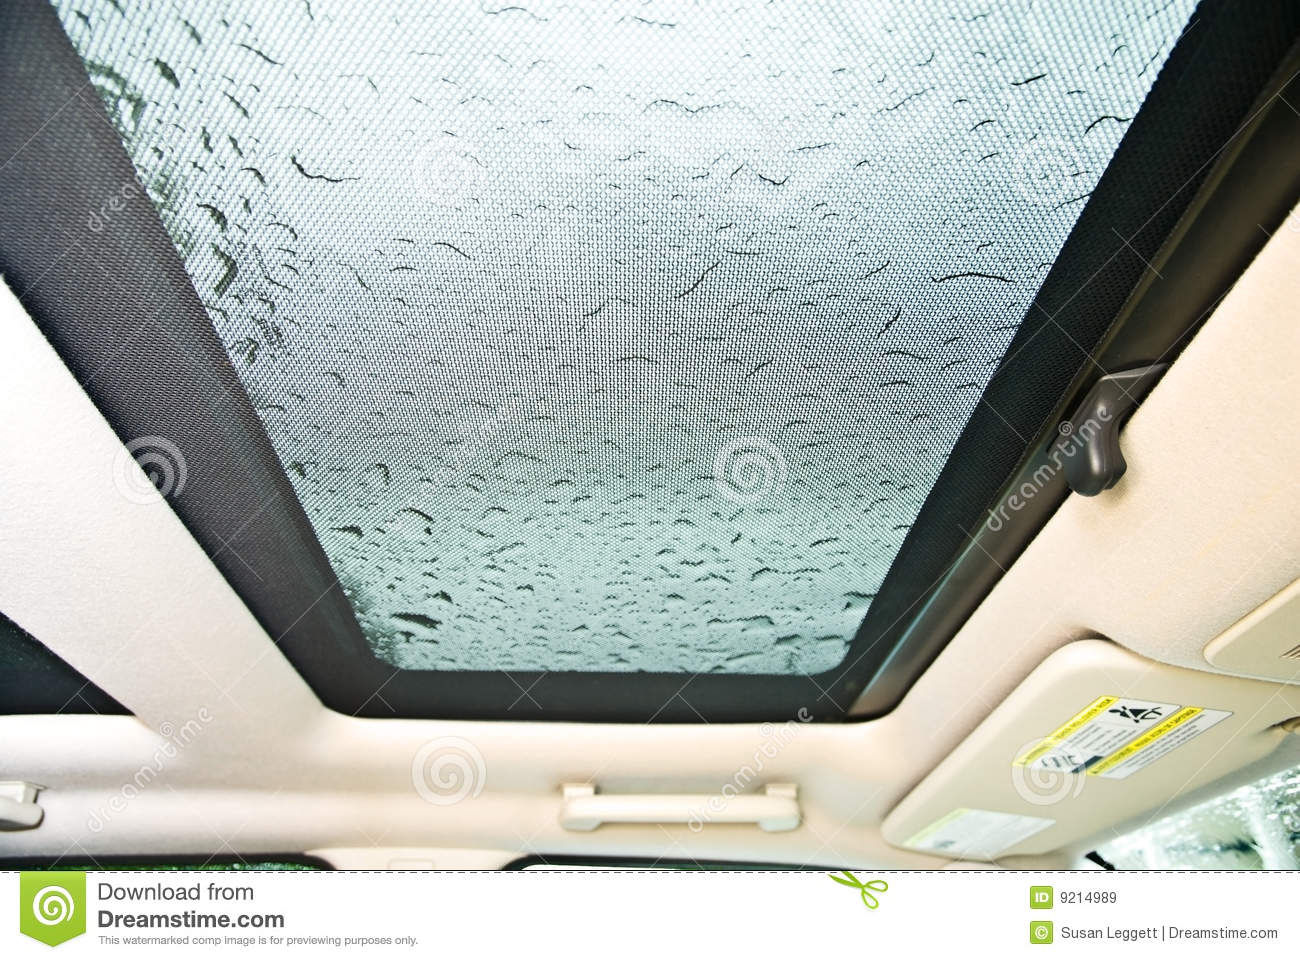 sunroof car rain royalty free stock images image 9214989. Black Bedroom Furniture Sets. Home Design Ideas